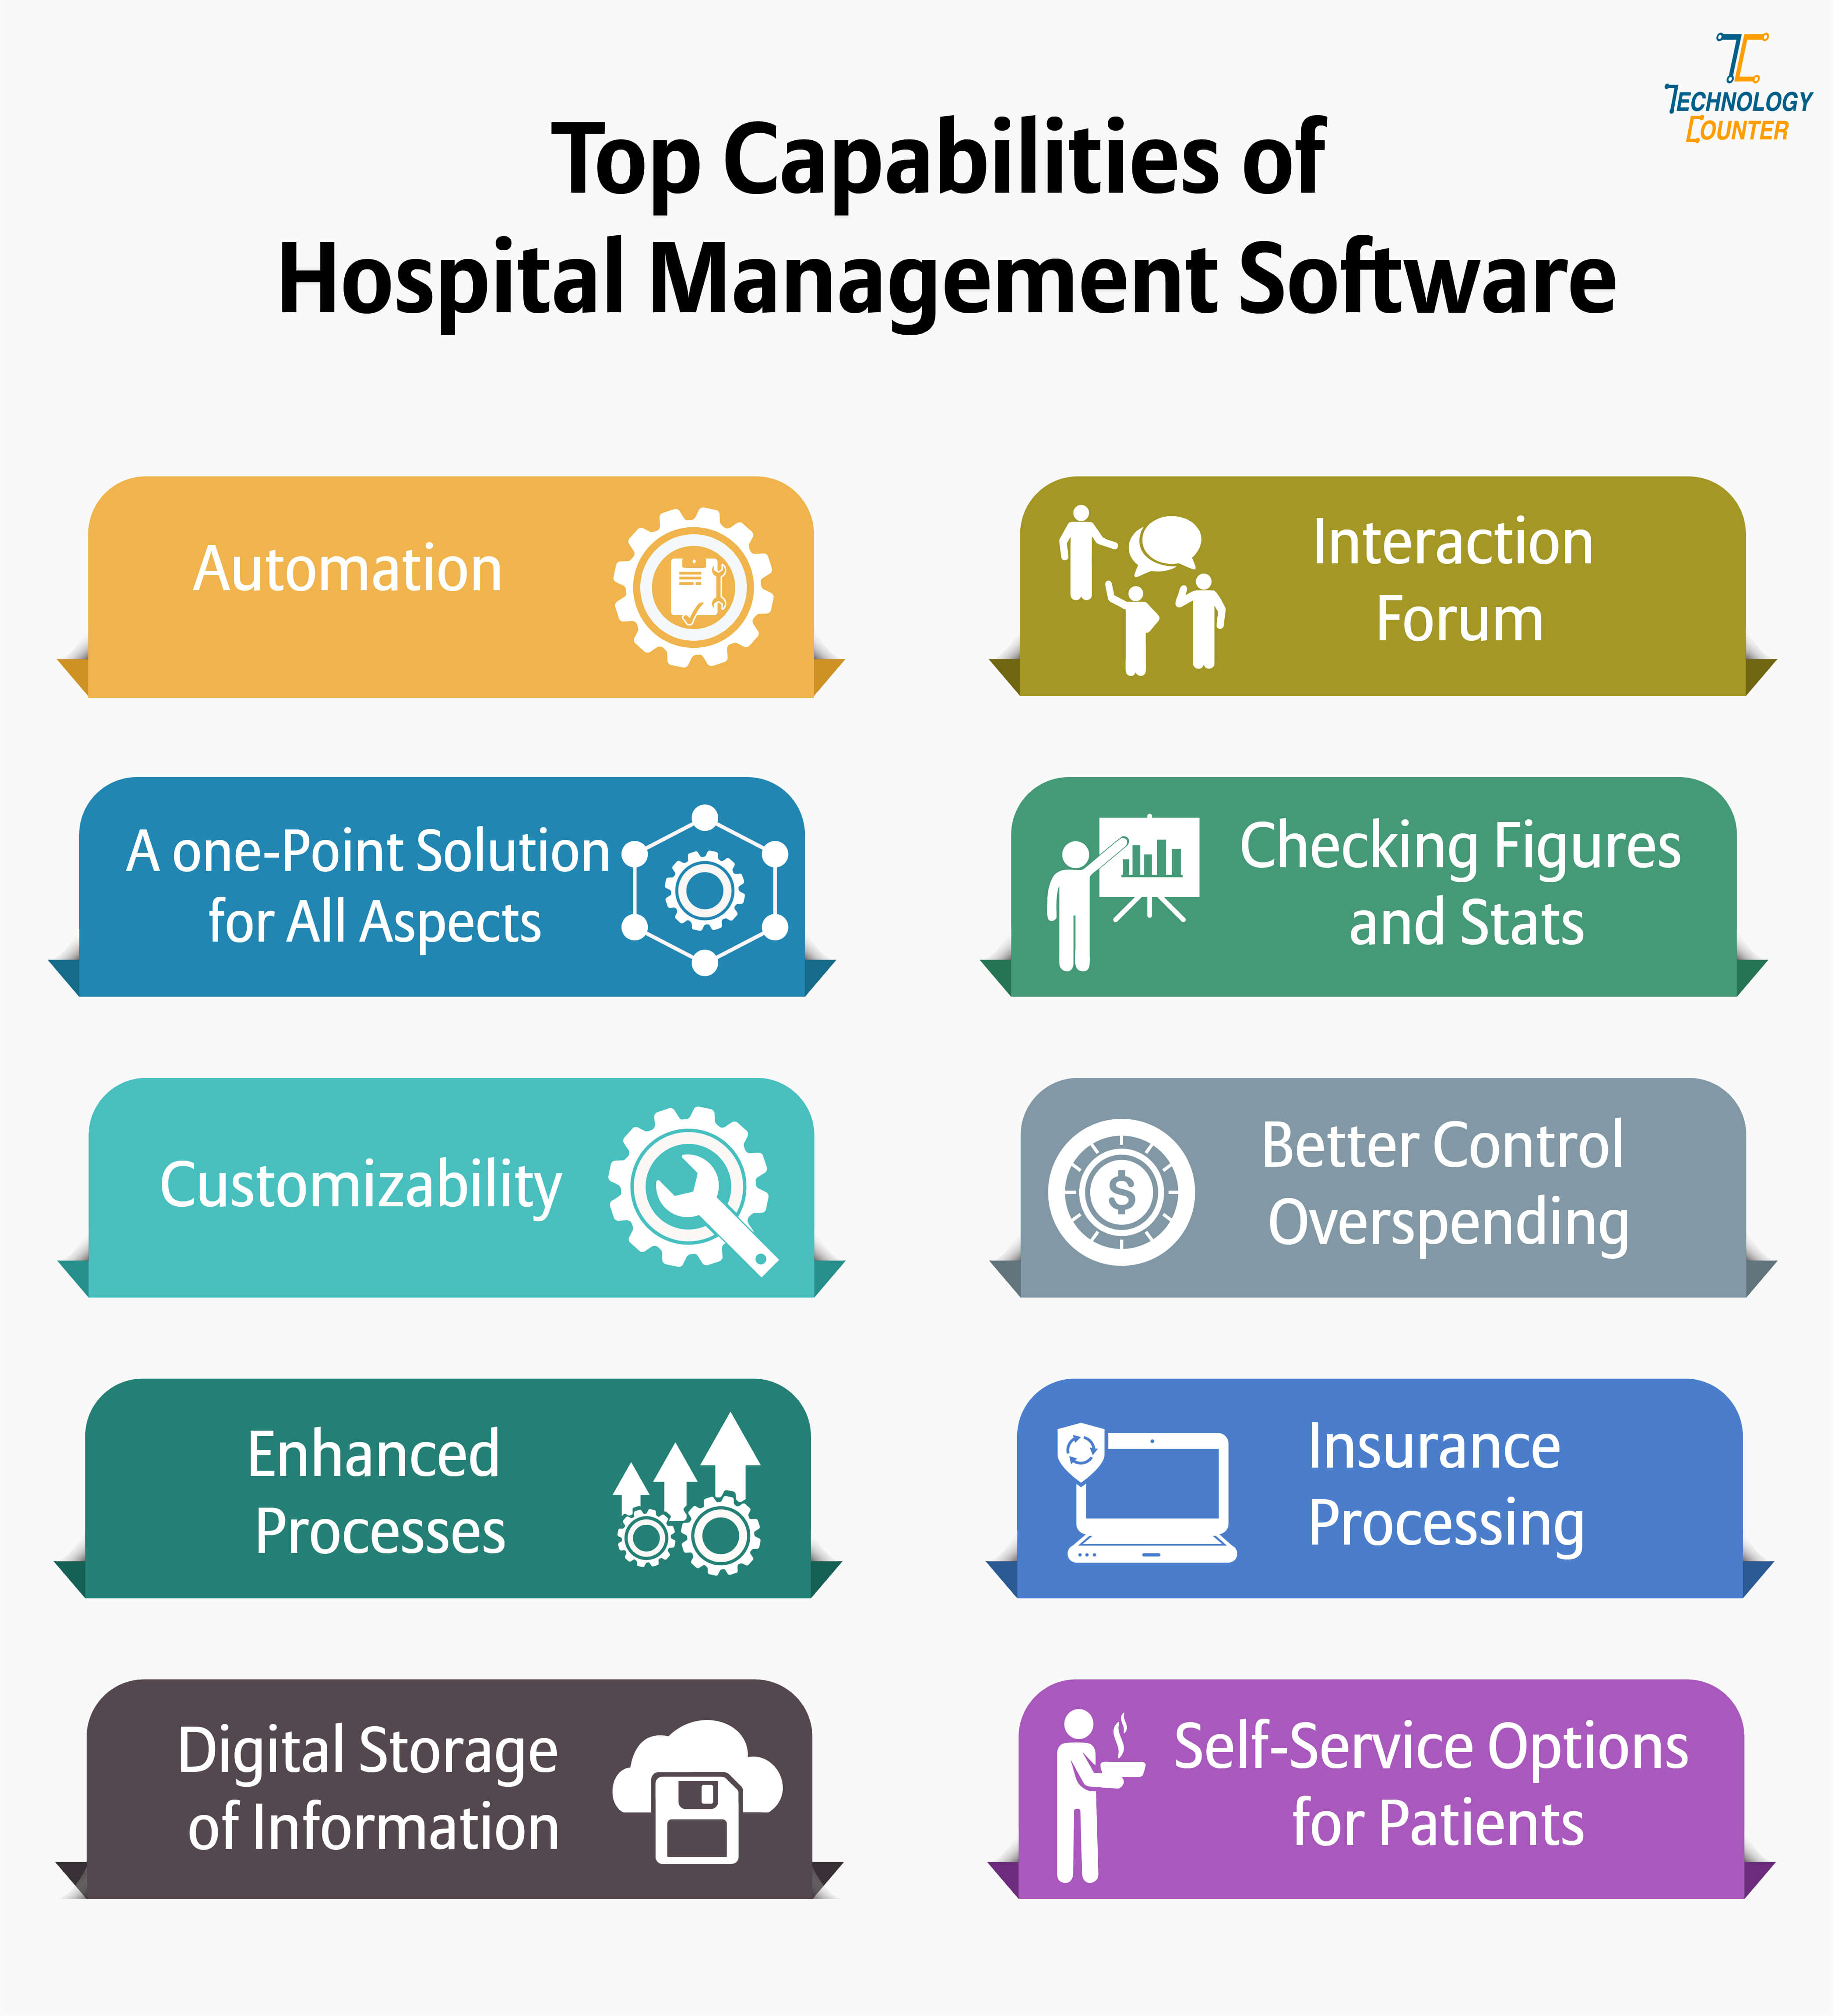 Top Capabilities of Hospital Management Software